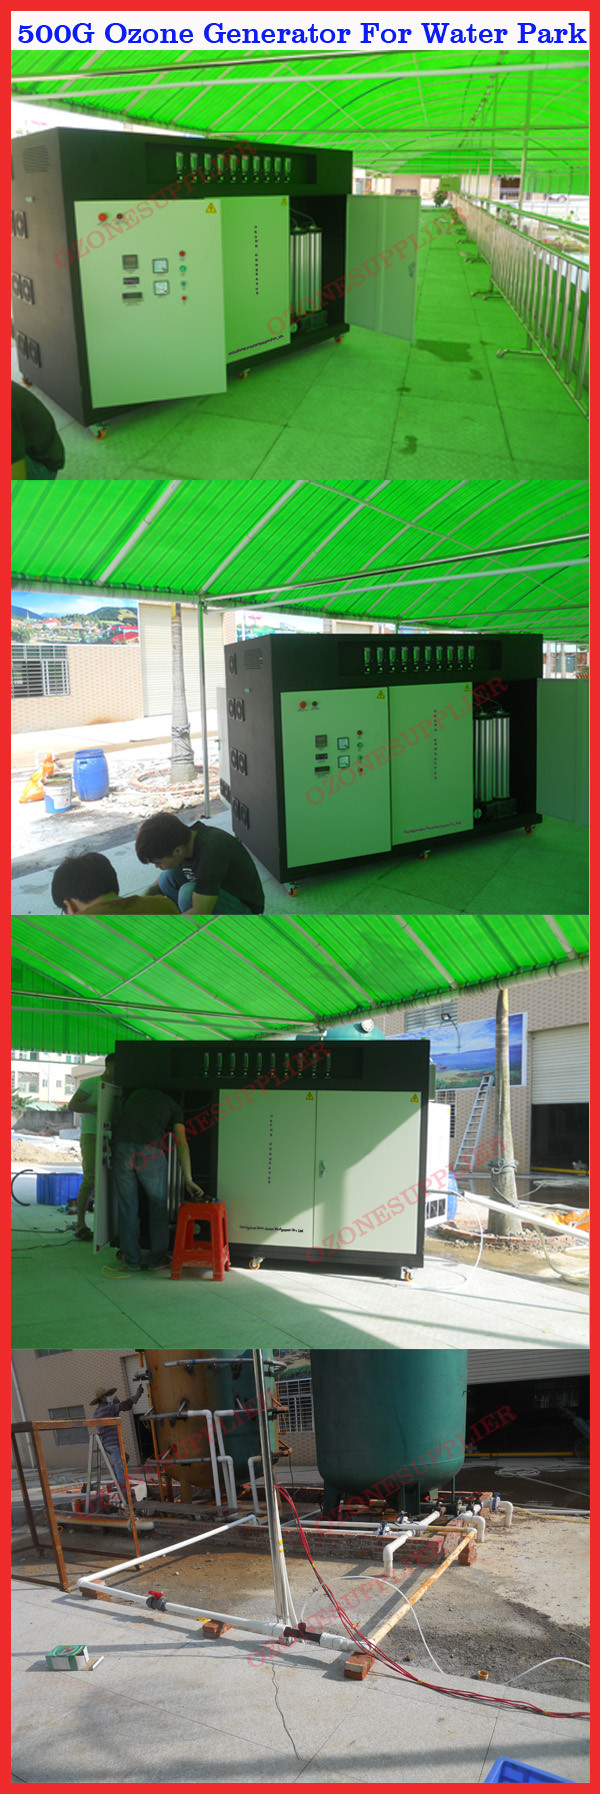 Heavy Duty 100g Ozone Generator For Swimming Pool Domestic Circuit Water Industrial Wastewater Aquaponic